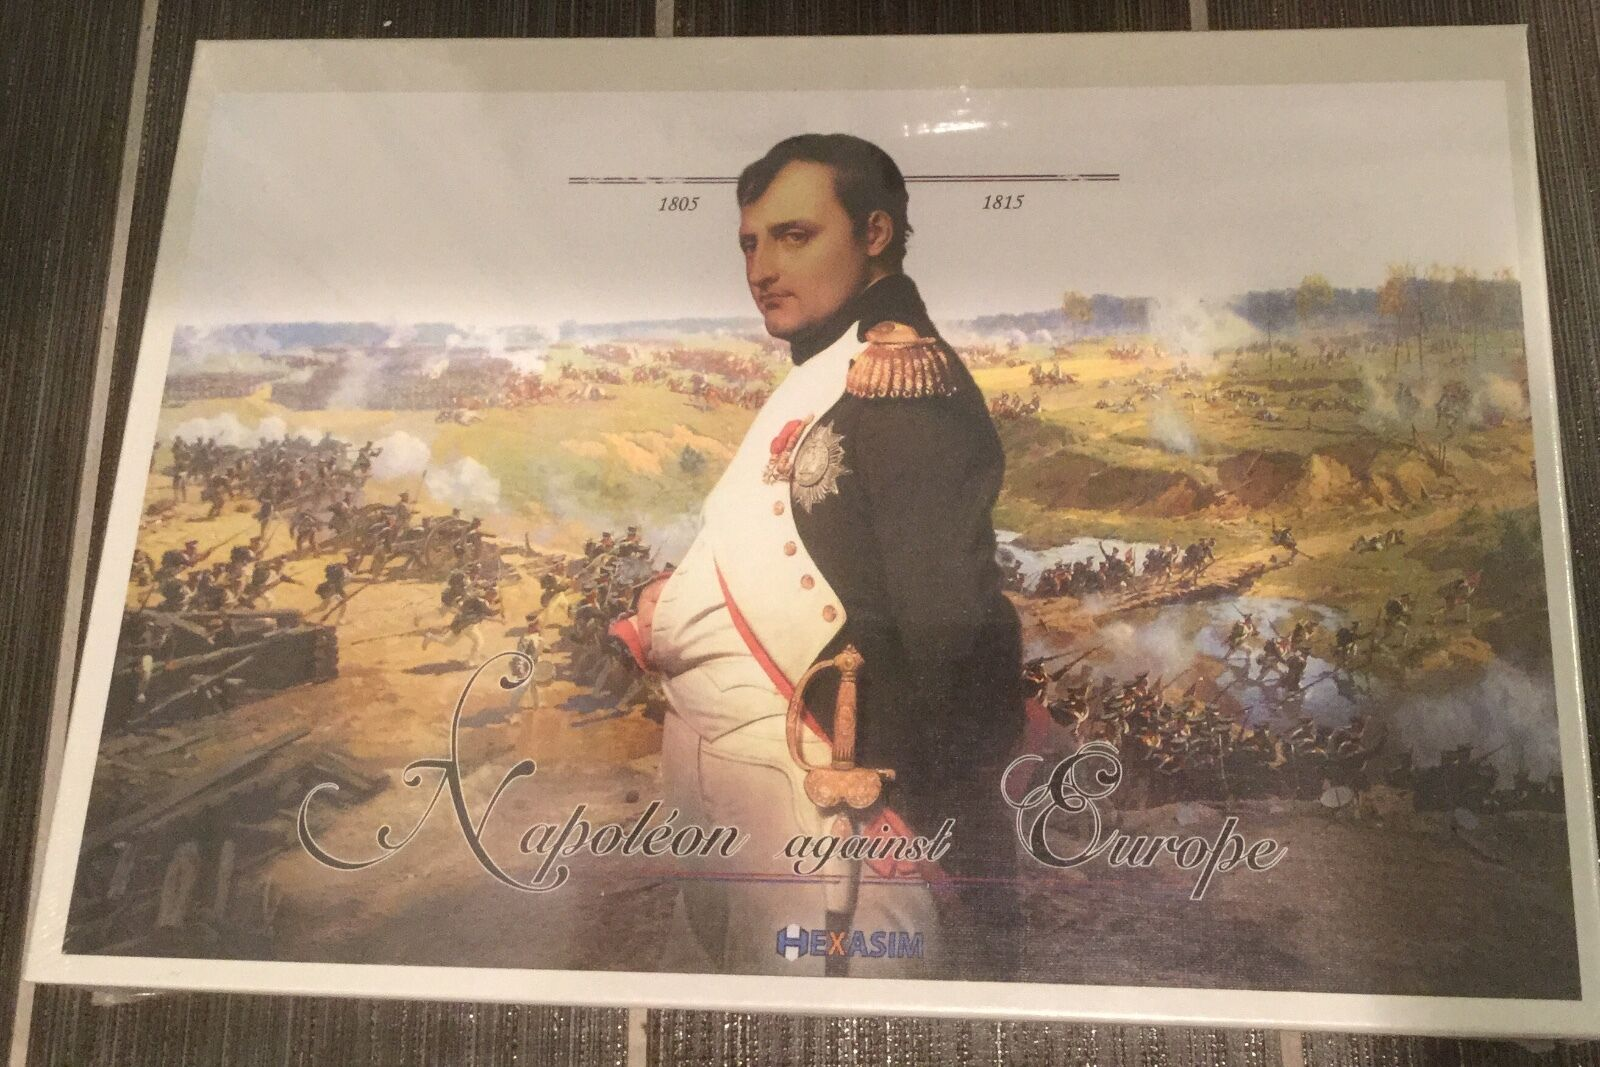 Napoleon against Europe board game. Hexasim  Shrink wrapped.